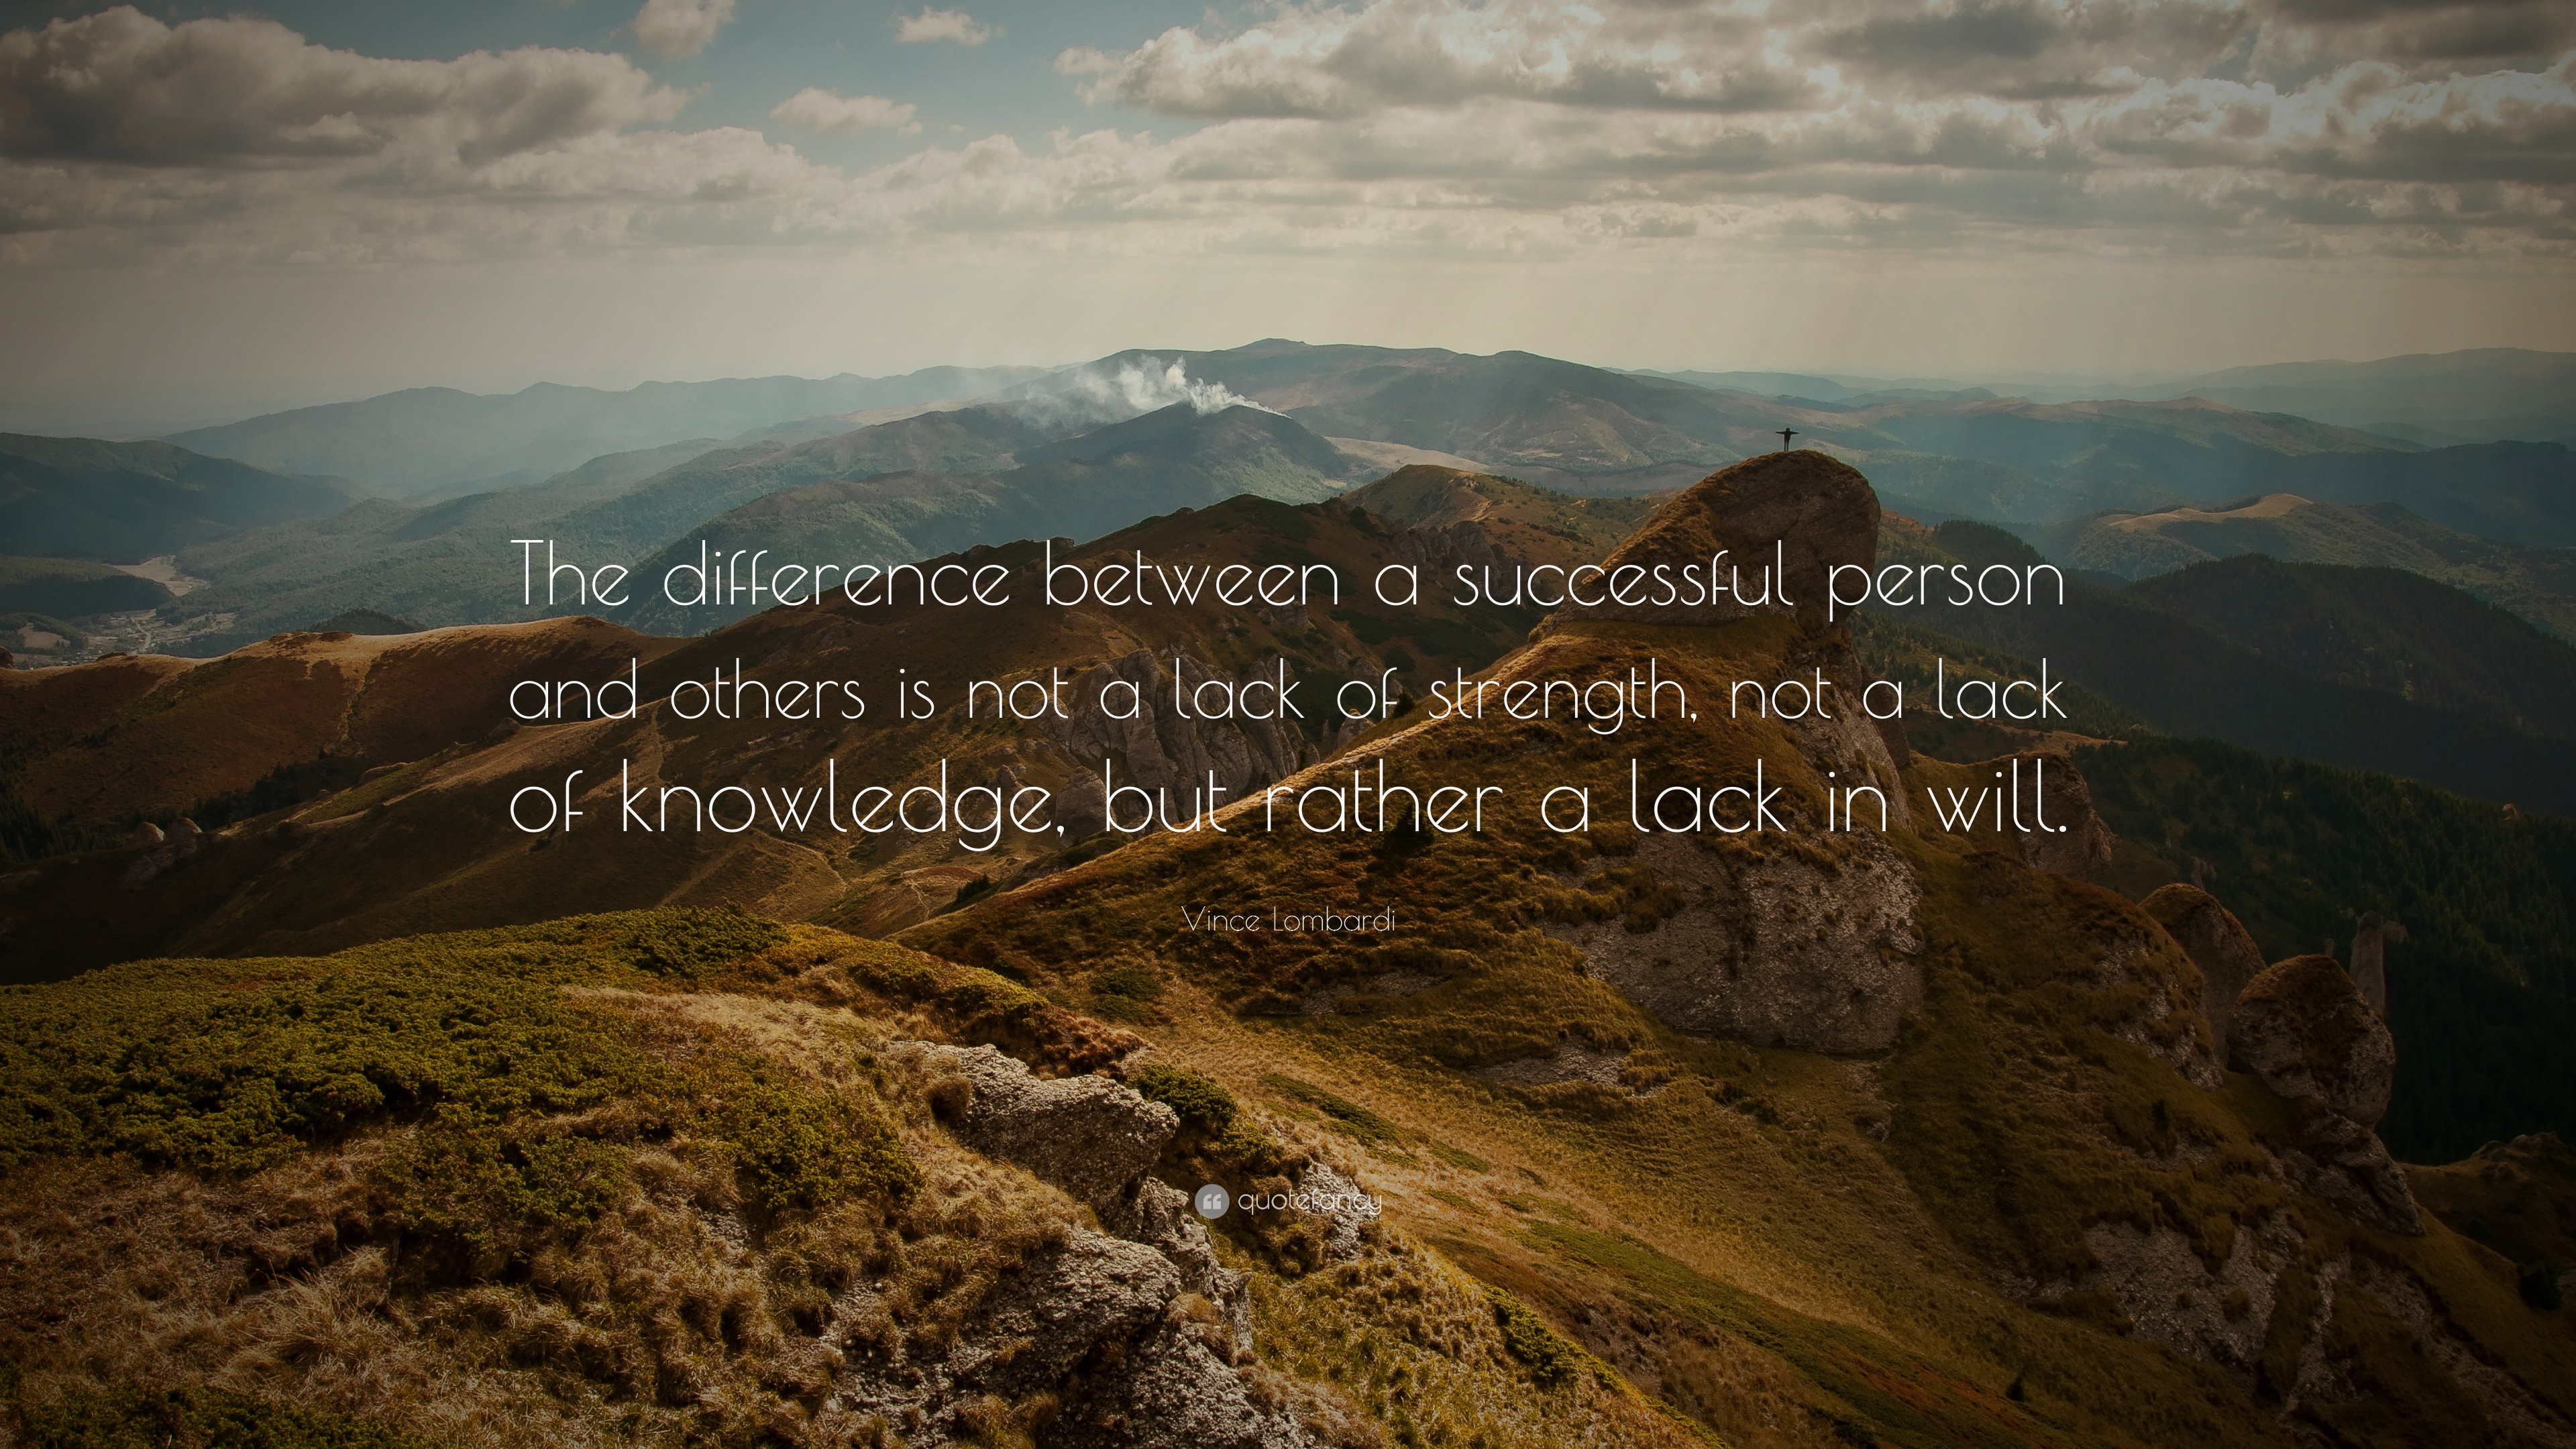 success quotes quotefancy success quotes the difference between a successful person and others is not a lack